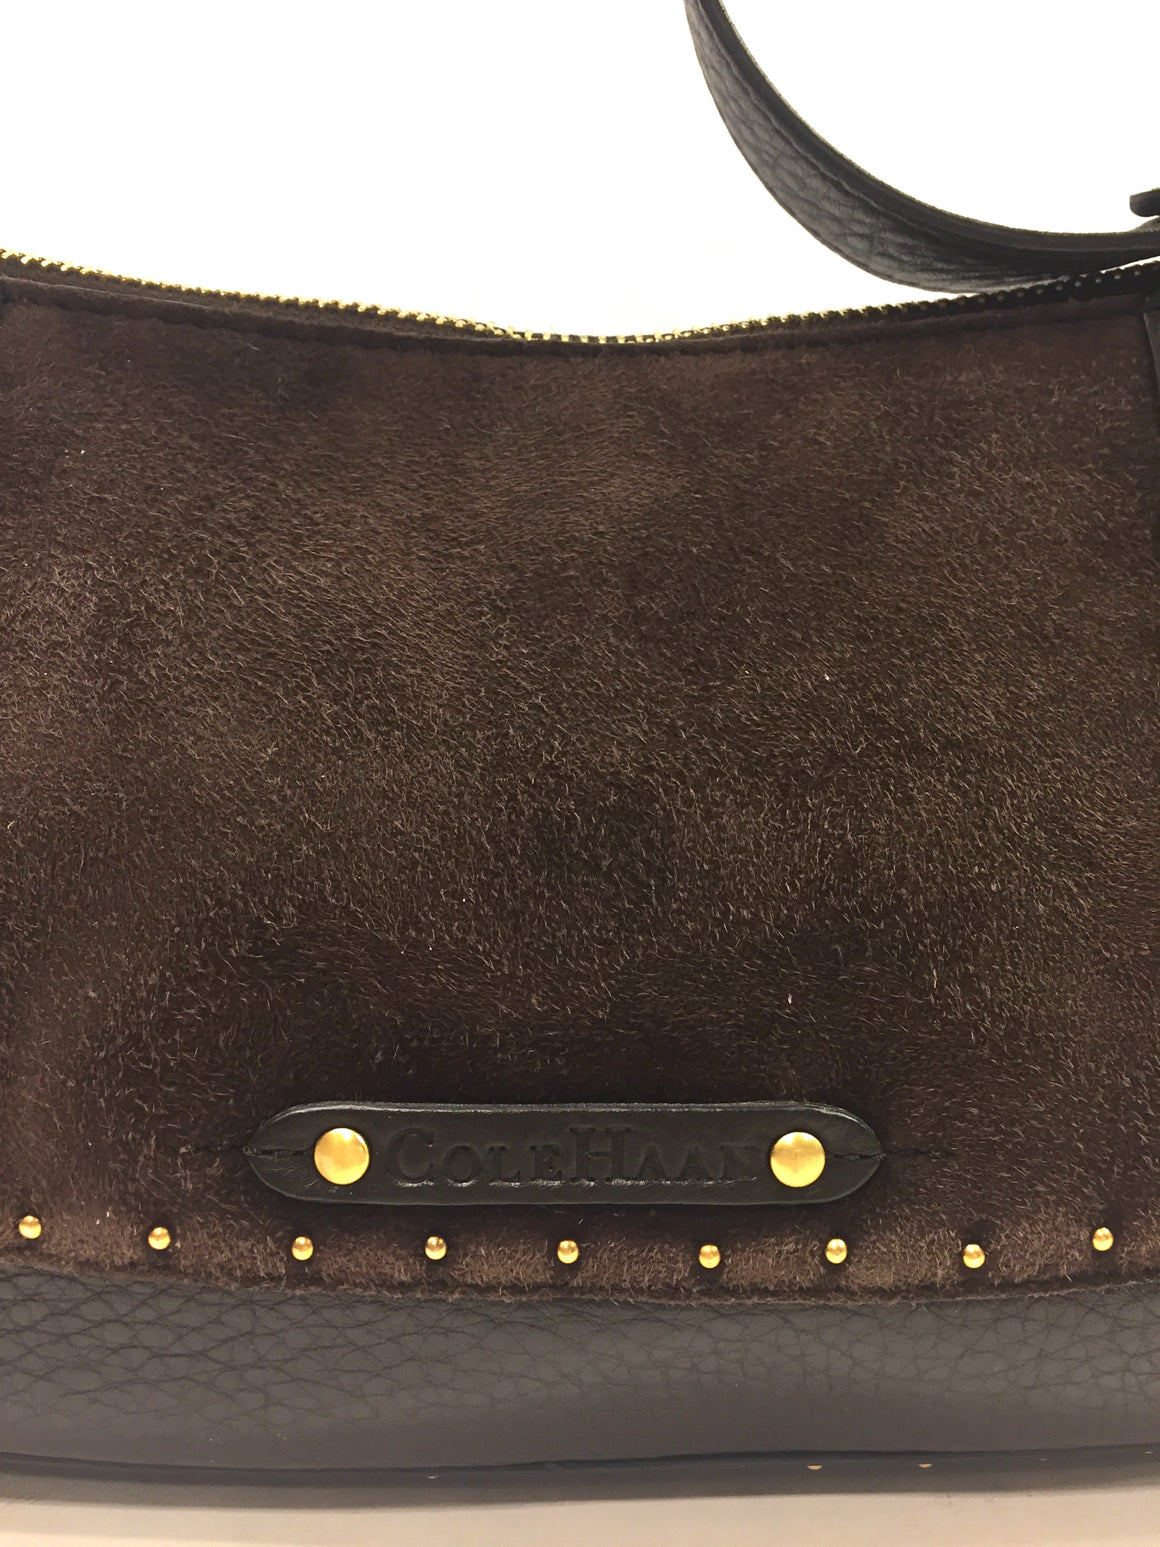 COLE HAAN Brown Grained Leather & Suede Gold-Stud Accent Small Shoulder Bag